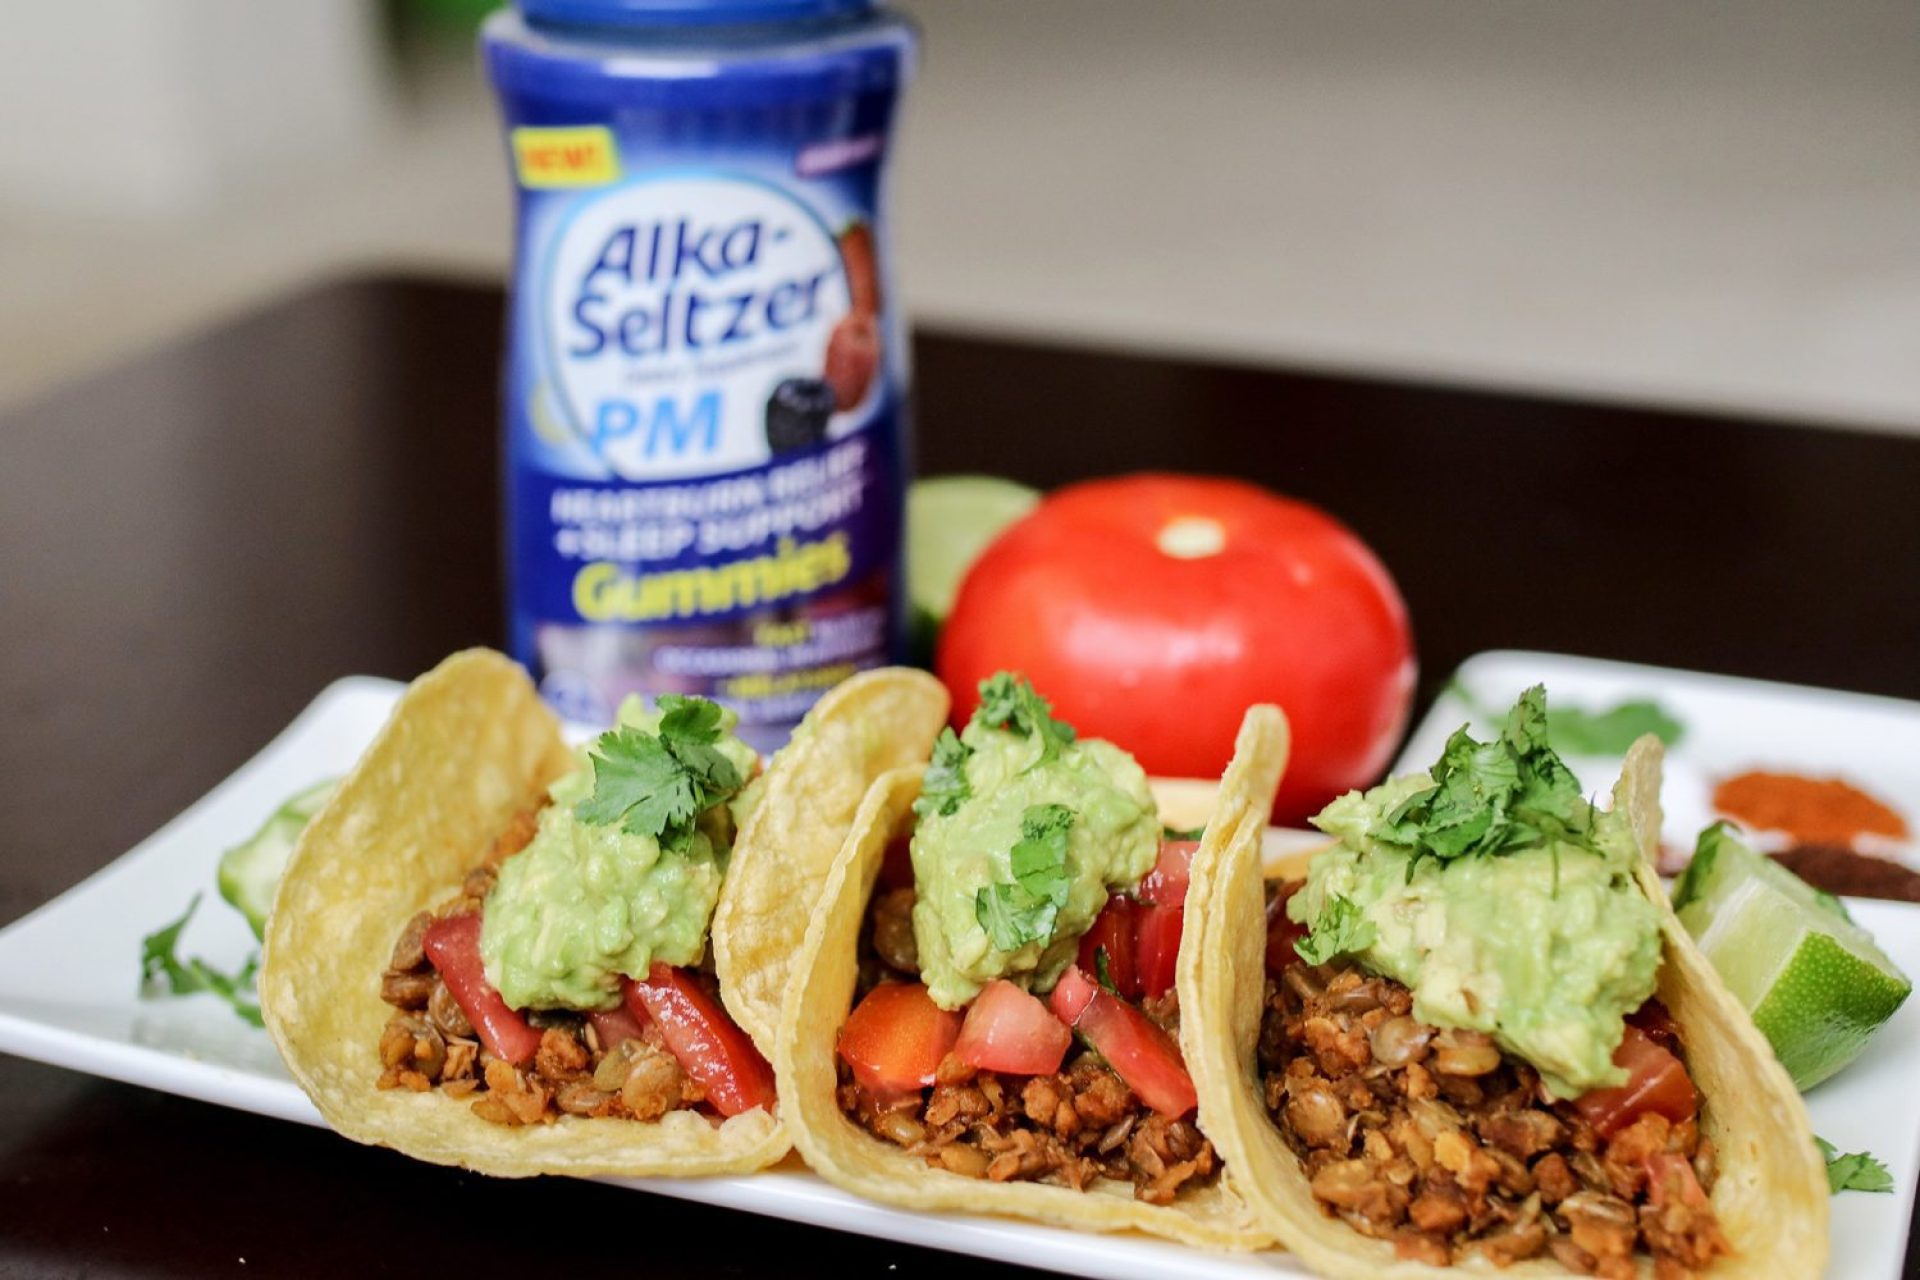 vegetarian dishes, vegetarian tacos, lentil tacos, spicy foods, spicy dishes, spicy recipes, vegetarian recipes, alka-seltzer, alka-seltzer PM, alka-seltzer PM gummies, mommy blog, mom blogger, family blog, family influencer, instagram, mother, father, tween blog, dad blog, United States, 2018, mom blog, top, best, mommy blogger, daddy blog, tween blogger, child brand influencer, the super mom life, dad blog, dad blogger